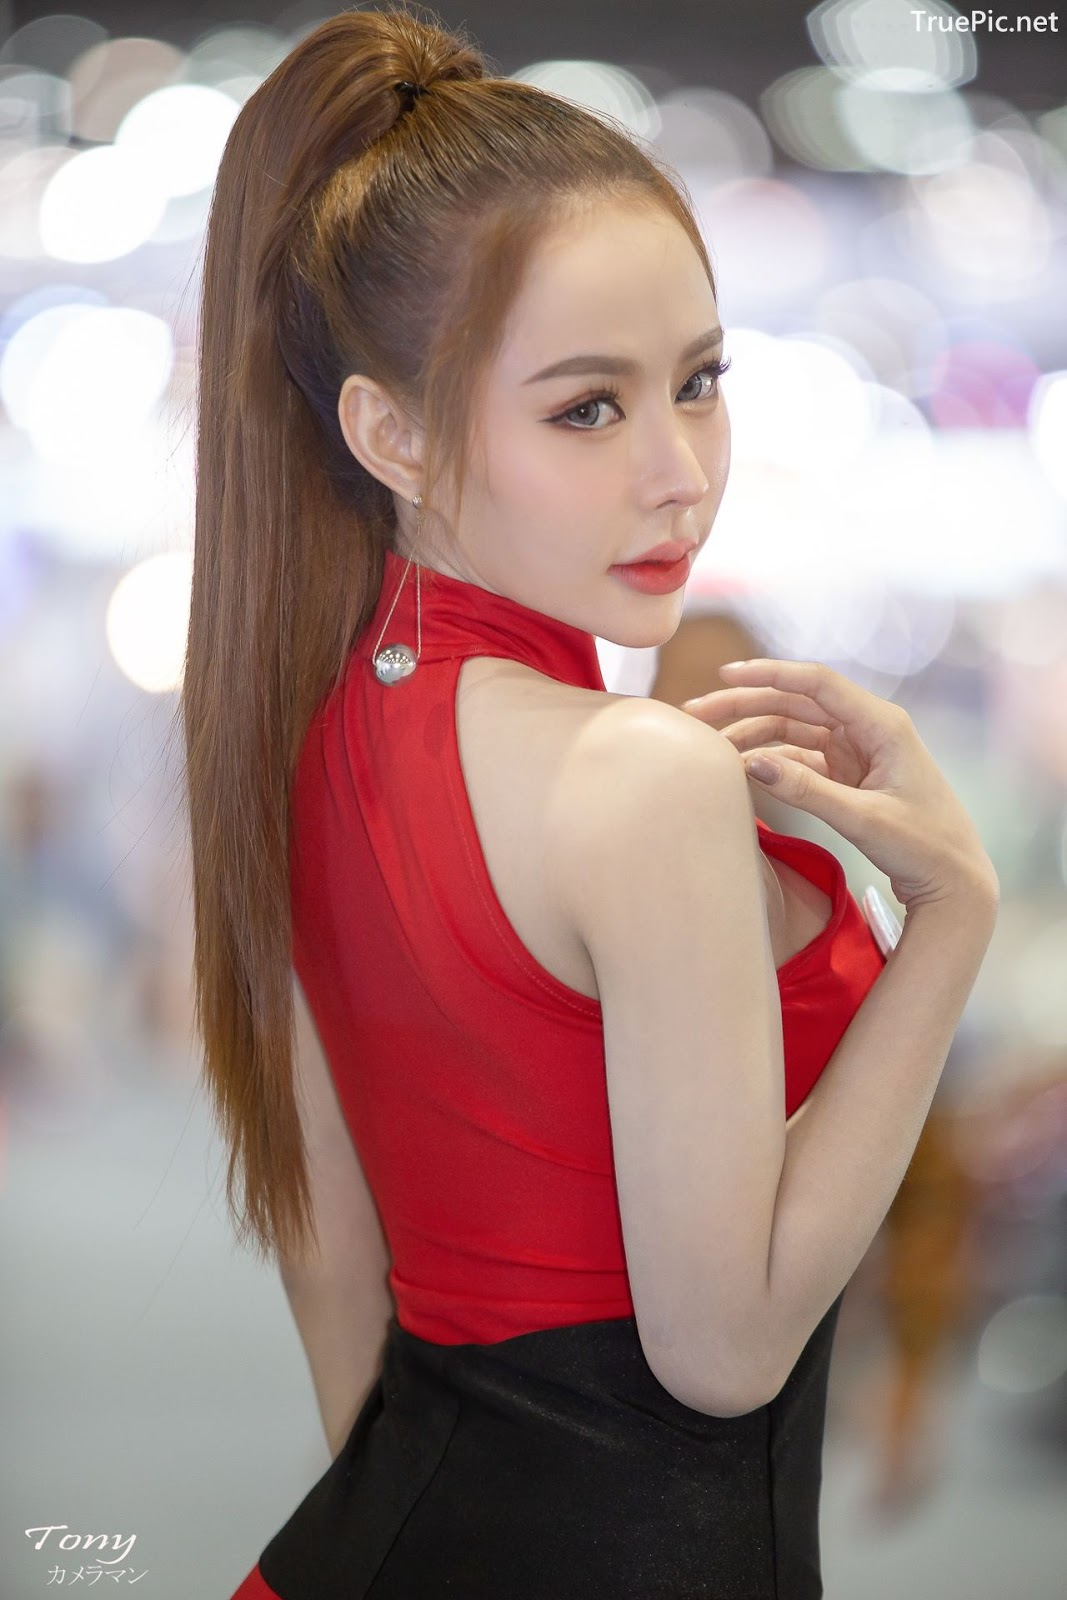 Image-Thailand-Hot-Model-Thai-Racing-Girl-At-Motor-Expo-2019-TruePic.net- Picture-2